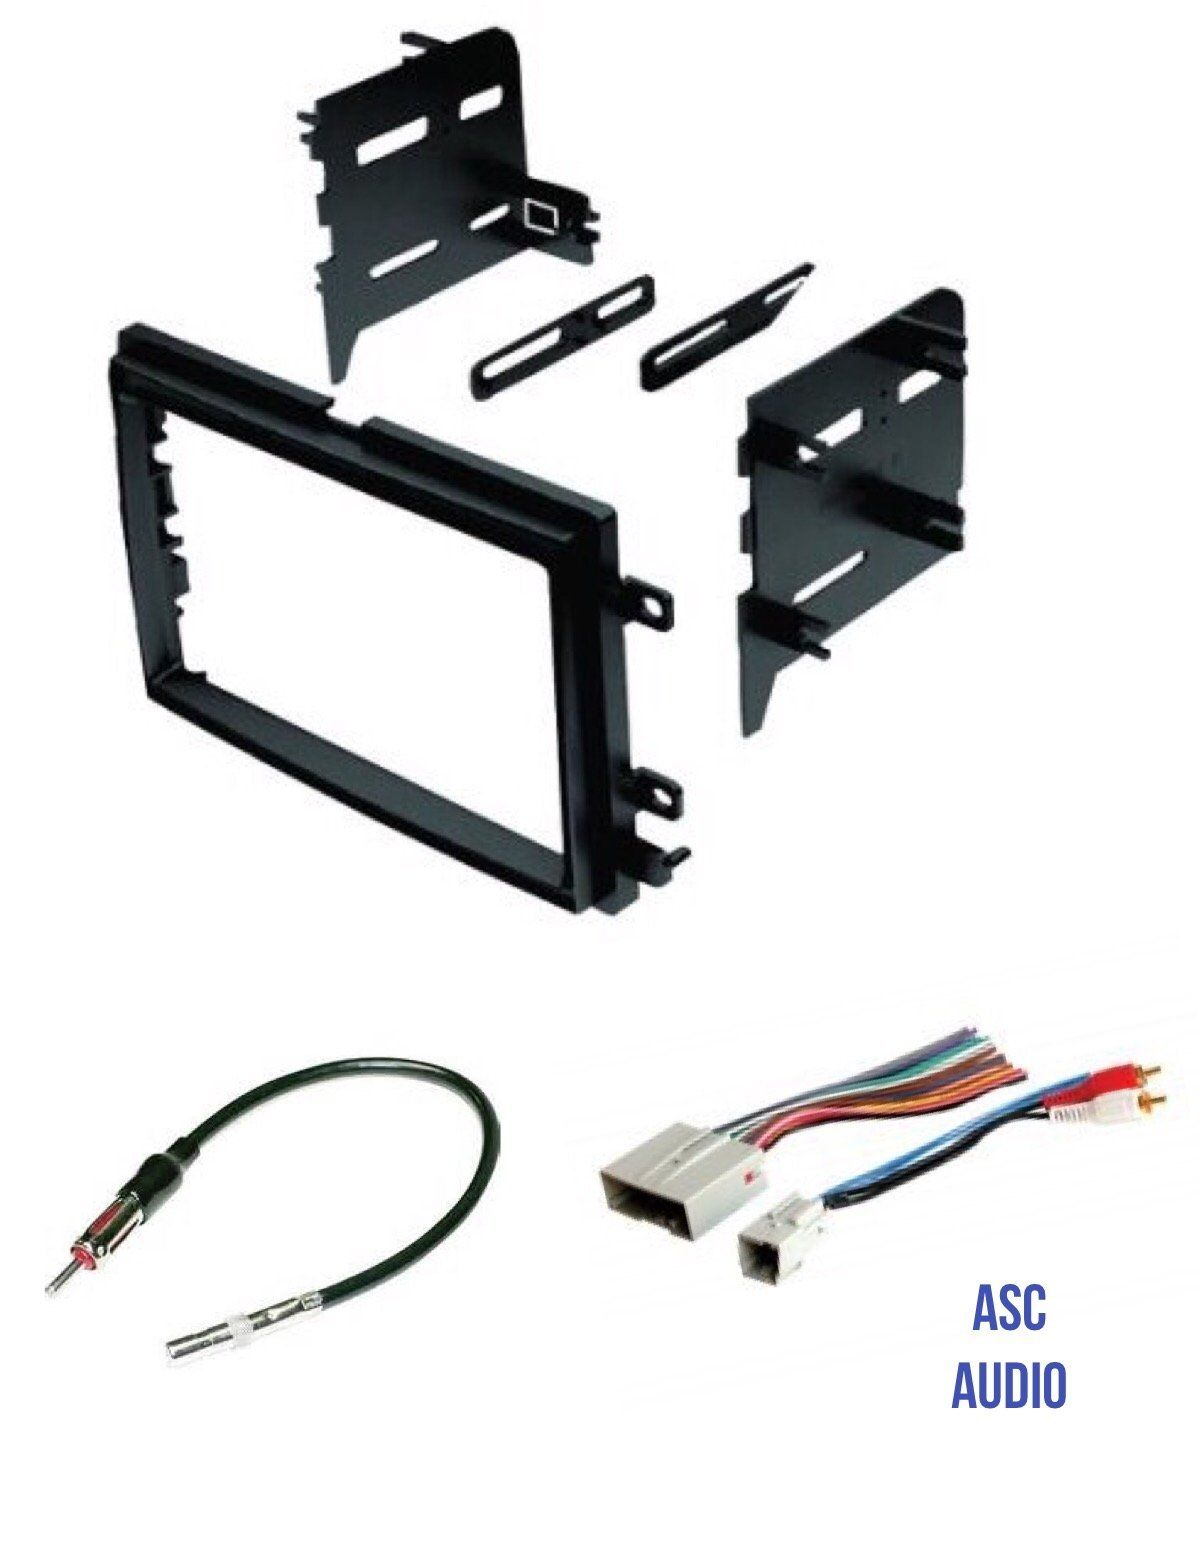 asc audio car stereo radio install dash kit, wire harness, and antenna  adapter to install a double din radio for some ford lincoln mercury  vehicles